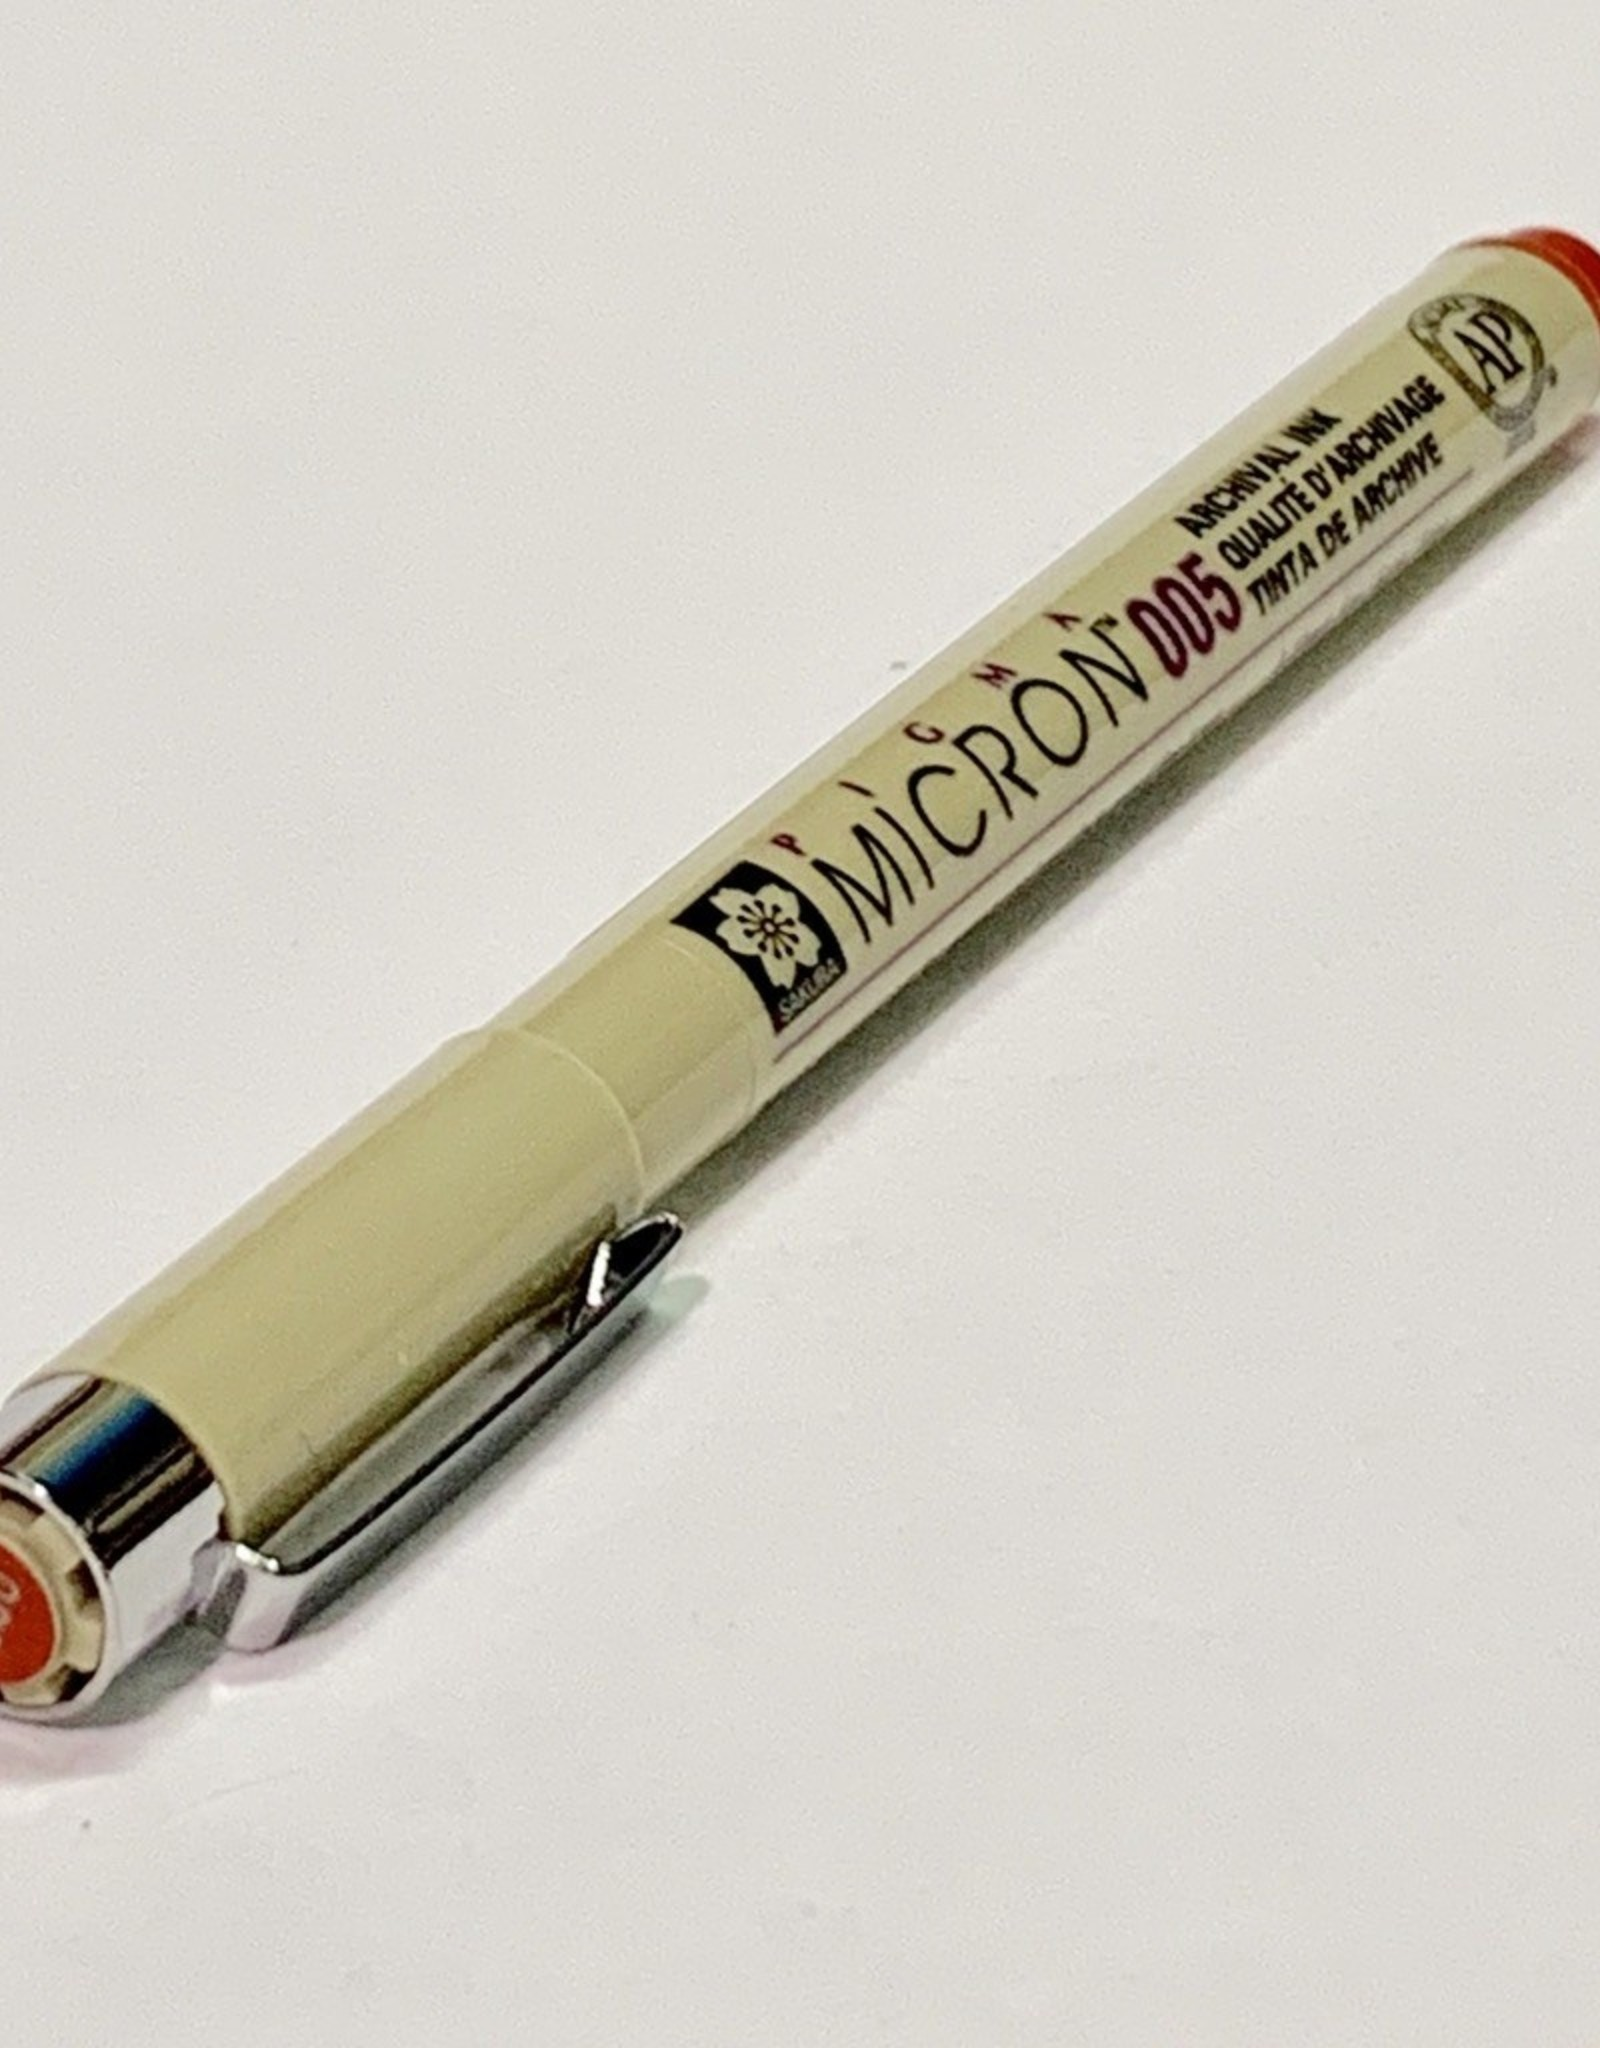 Micron Red Pen 005 .20mm